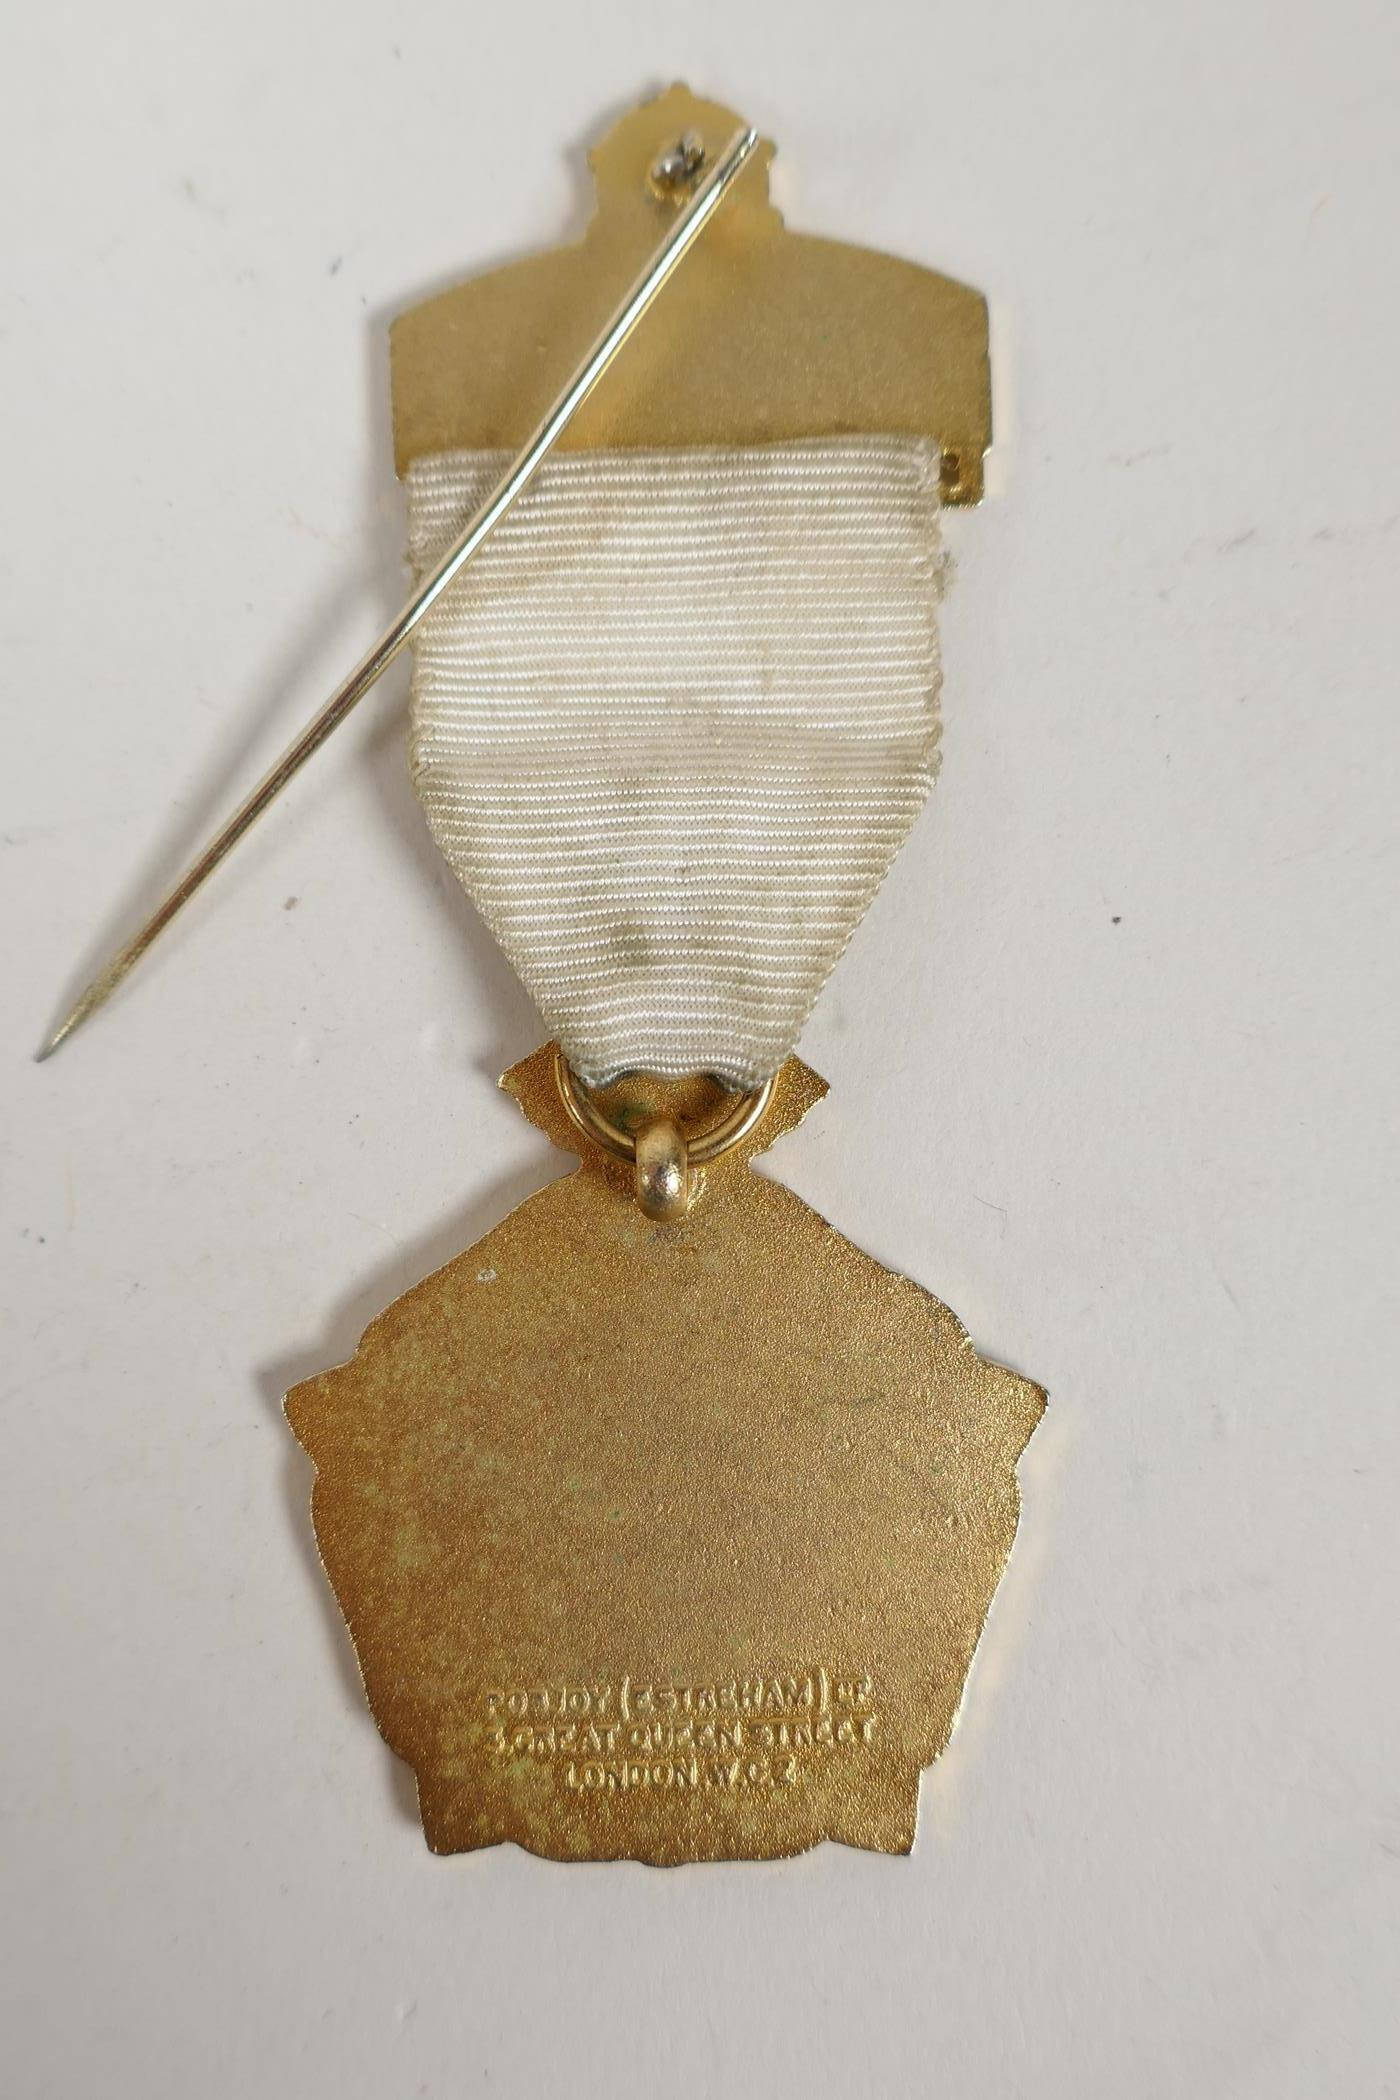 A bronze medallion commemorating Andreas Hofer together with masonic medals and an RAF cap badge, - Image 7 of 8